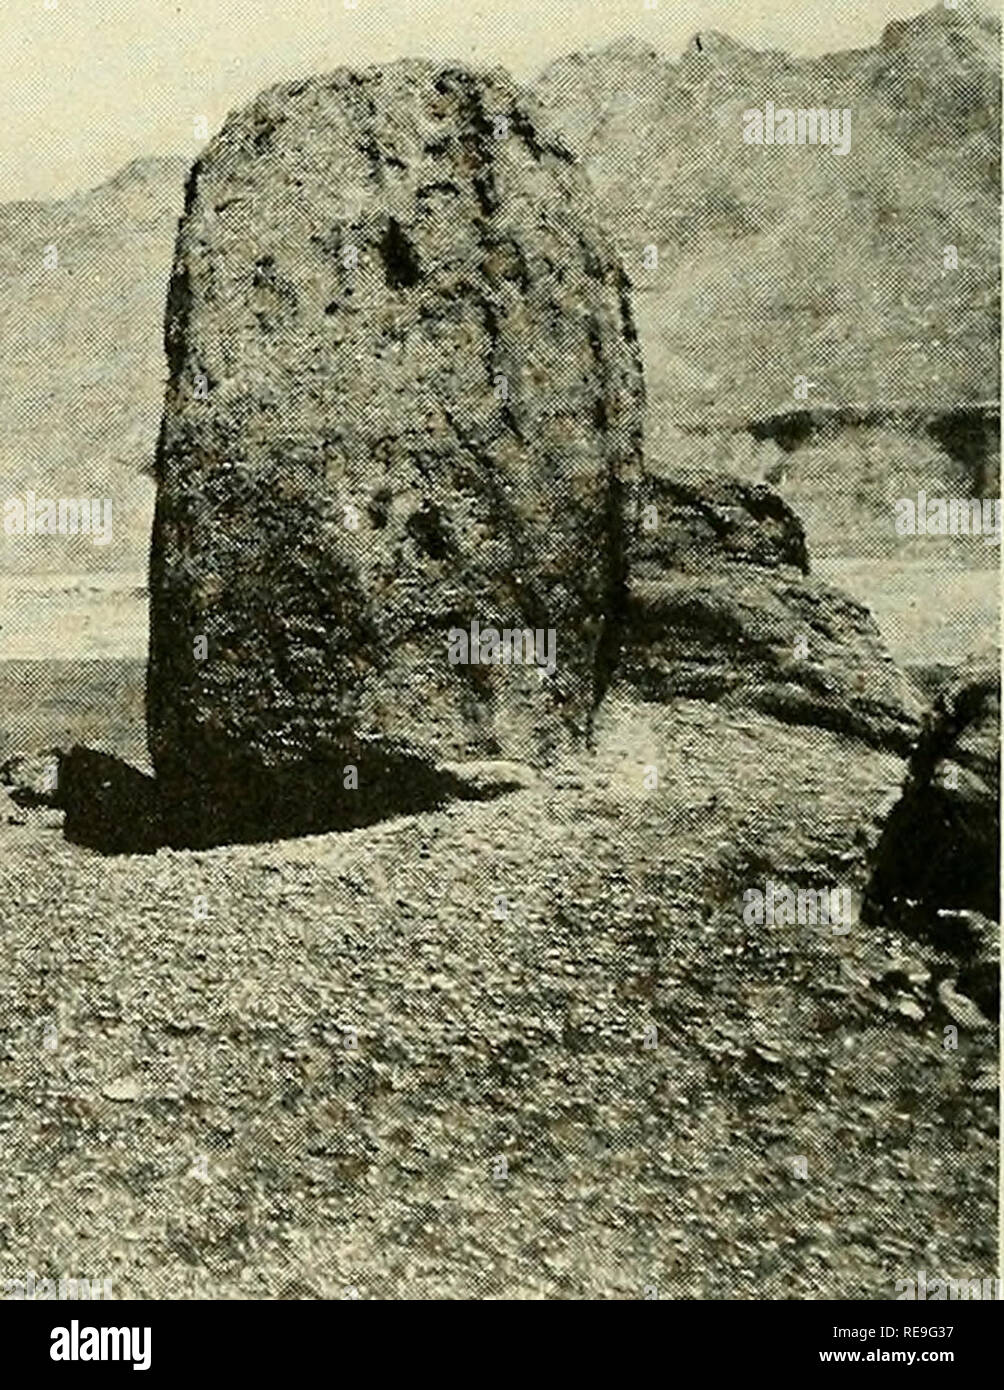 . Contributions to the geography of the United States, 1923-1924. Geology; Mines and mineral resources. B. BLOCK OF SHINARUMP CONGLOMERATE WITH VERTICAL BEDDING PLANES. Rests on subconical hillock of Moenkopi formation veneered by gravel resulting from the disintegration of the block. The slight hollow on the left of the block is due to incomplete protection from drip by the gravel. Marble Canyon is concealed in the light-colored area (Kaibab limestone) in the middle ground. Echo Cliffs with fret of Shinarump cliffs at the base rise in the background.. Please note that these images are extract - Stock Image